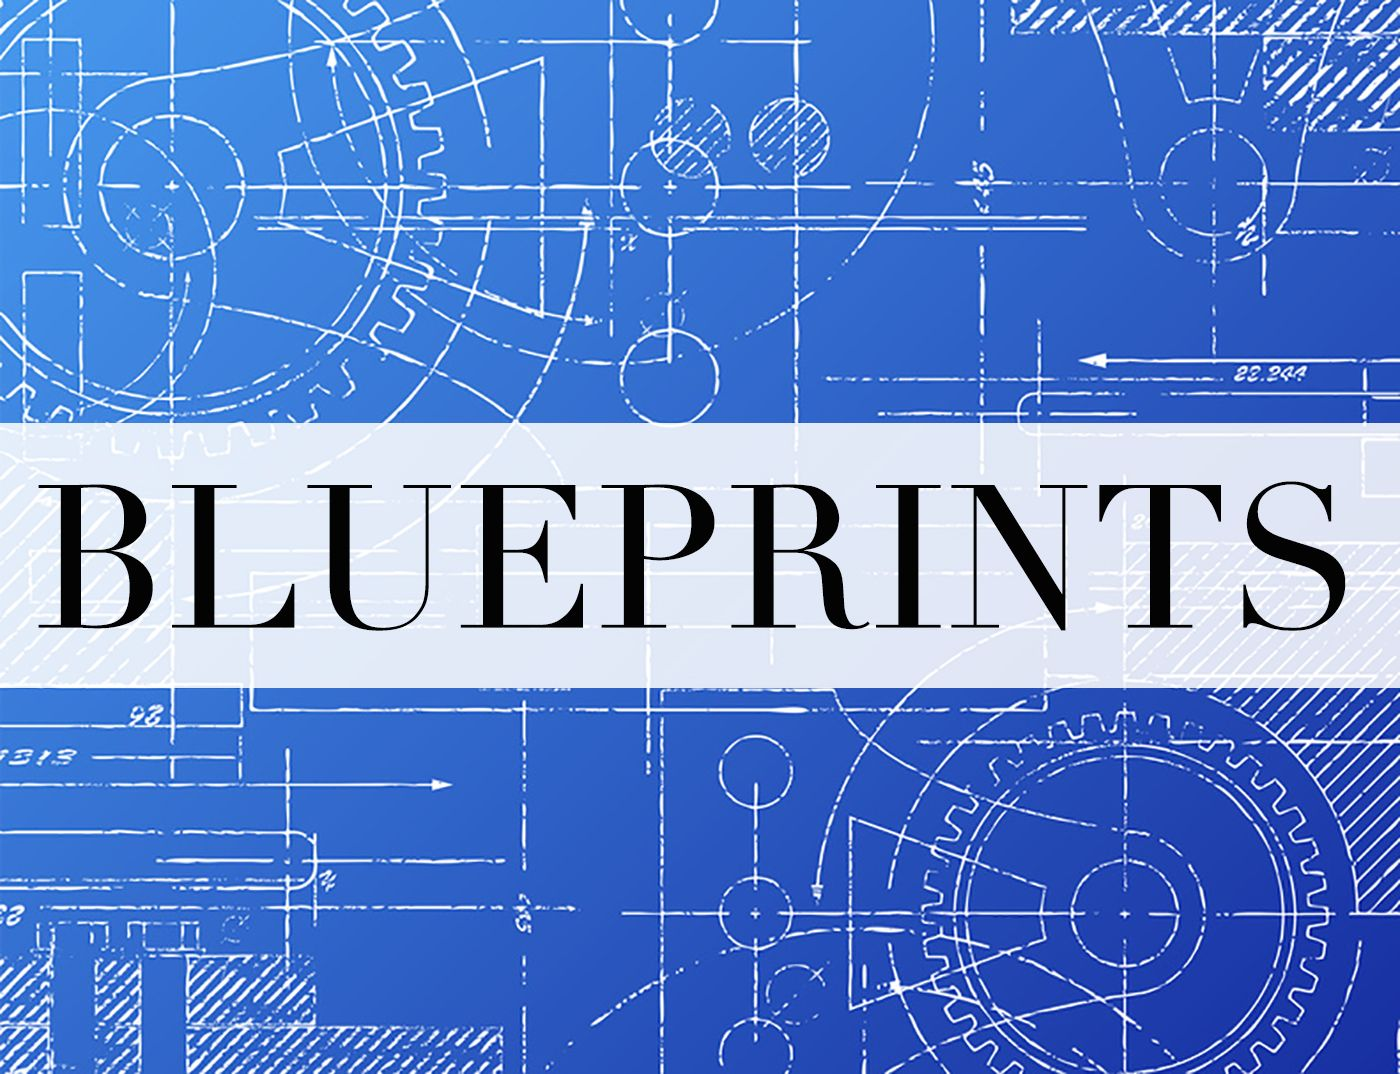 In his latest blog post founder and ceo kody bateman writes about in his latest blog post founder and ceo kody bateman writes about finding the blueprint for success in your mlm business read more in the post below and malvernweather